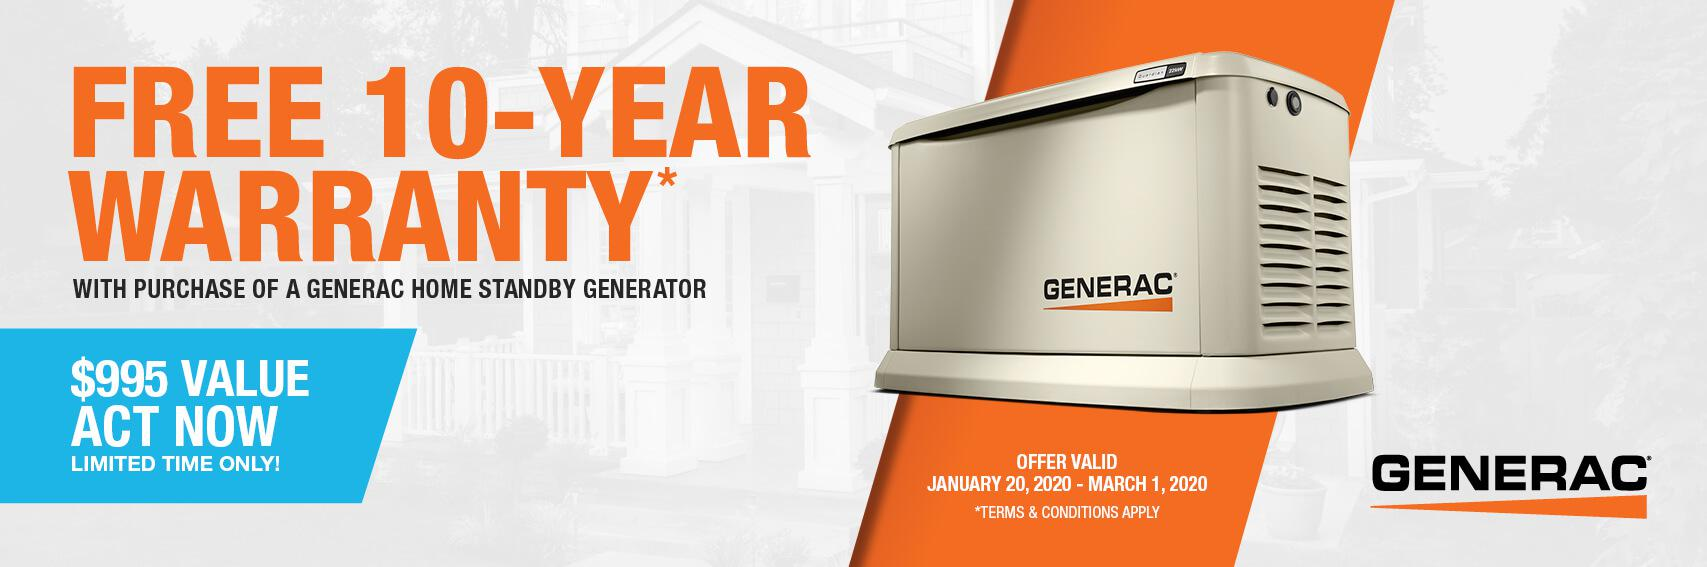 Homestandby Generator Deal | Warranty Offer | Generac Dealer | Contoocook, NH